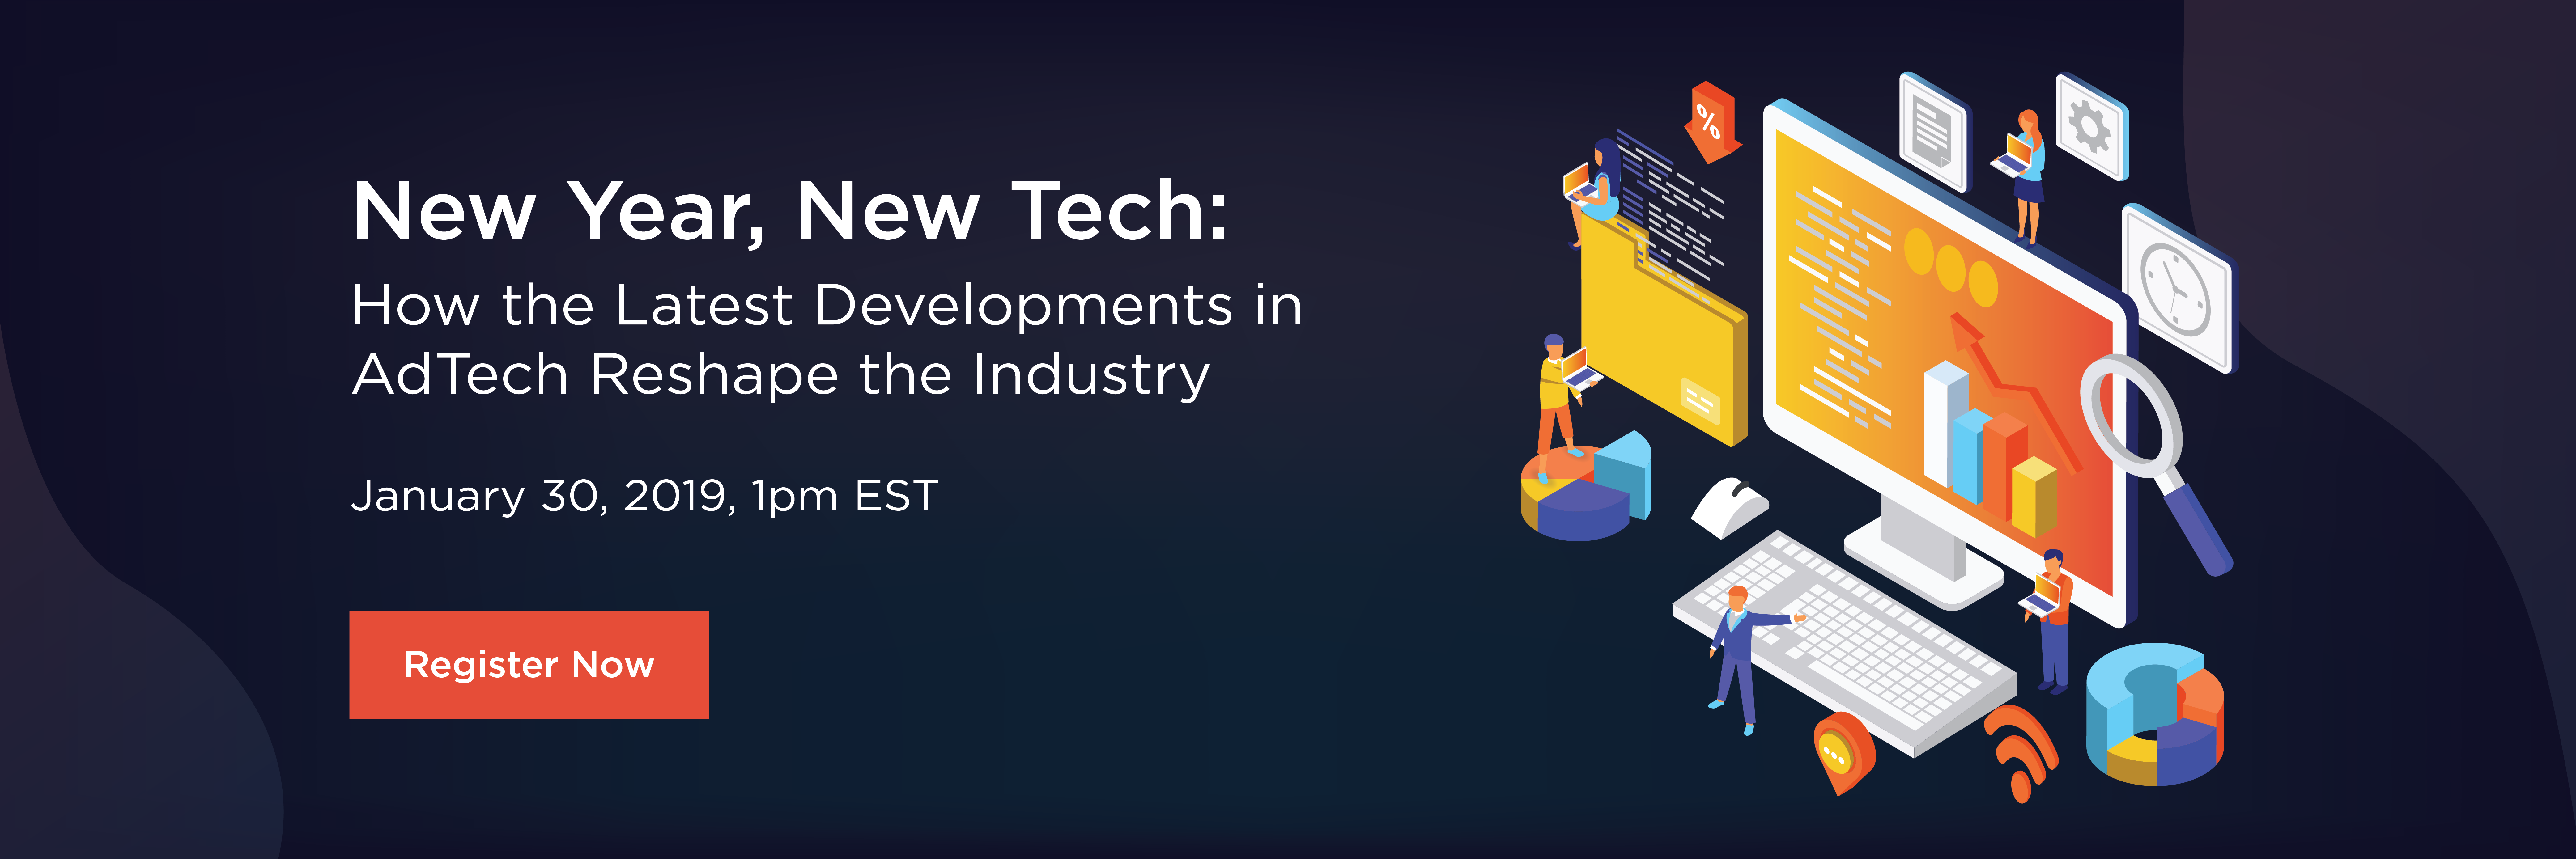 New Year, New Tech: How the Latest Developments in AdTech Reshape the Industry. January 30, 2019, 1PM EST